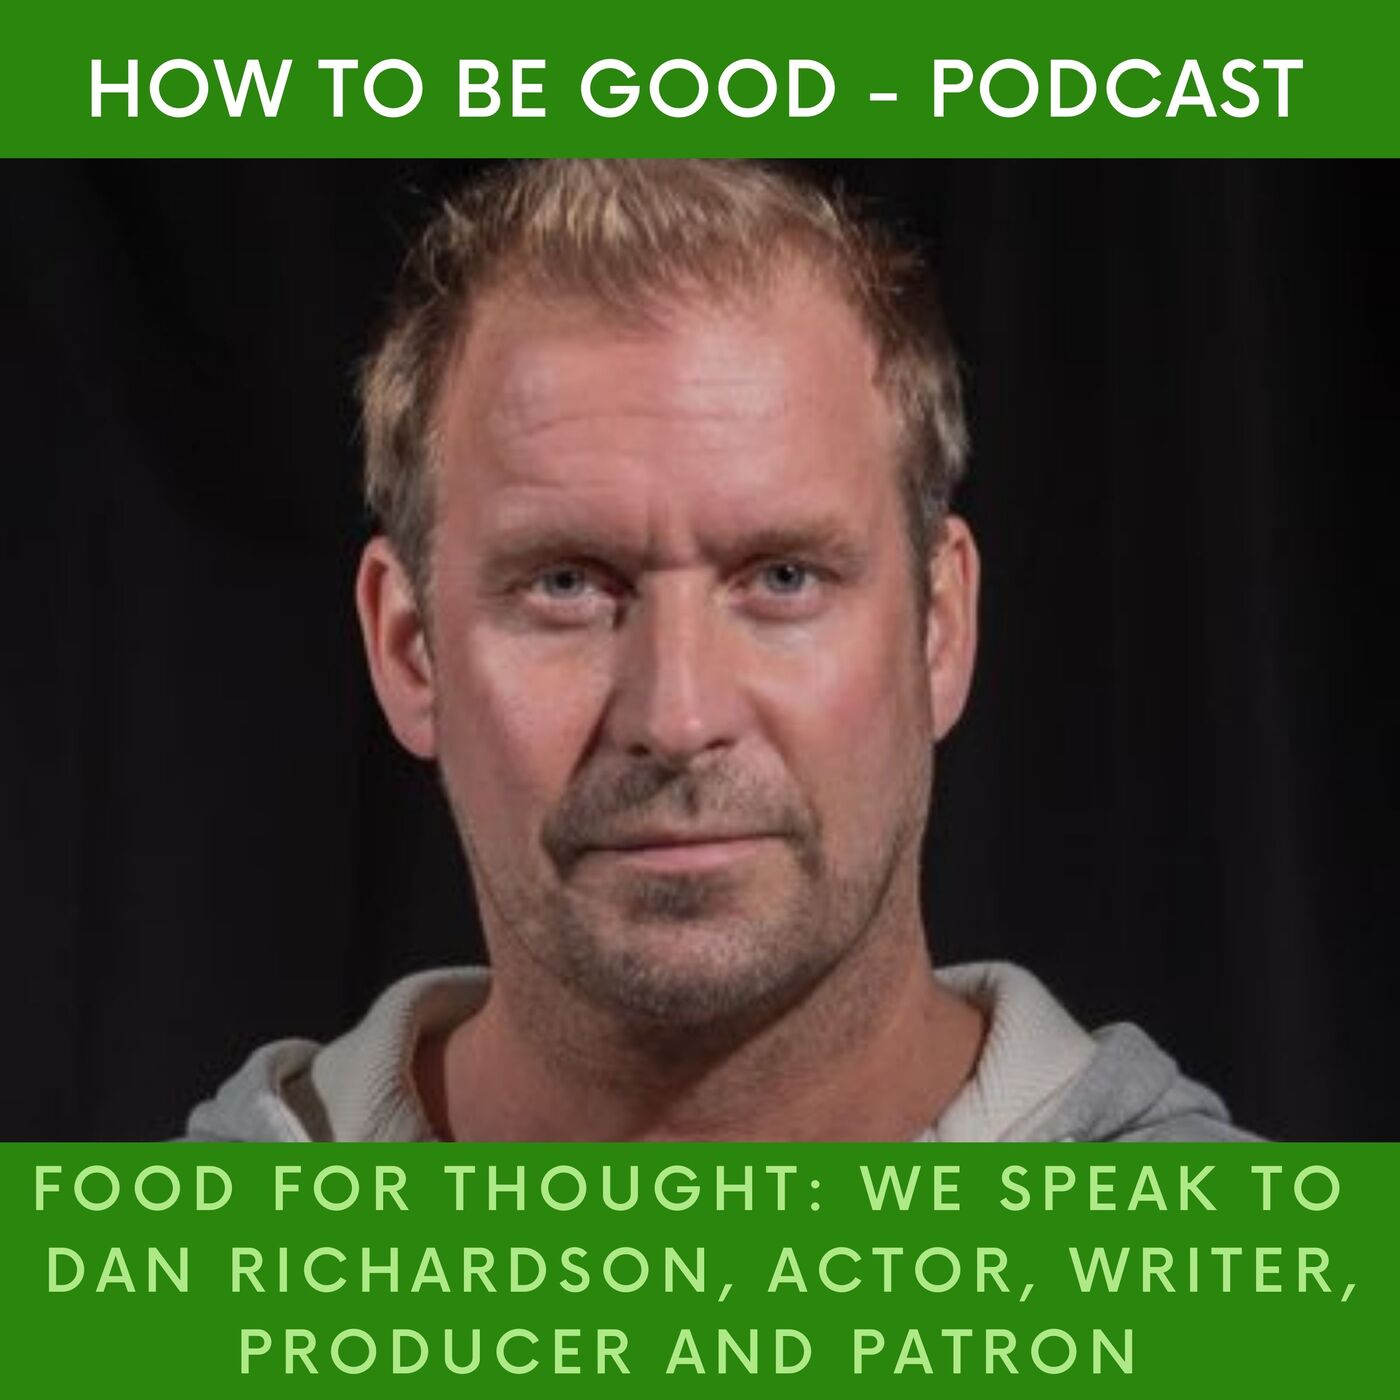 Dan Richardson Part 2: Food for Thought, we continue our talk with Dan